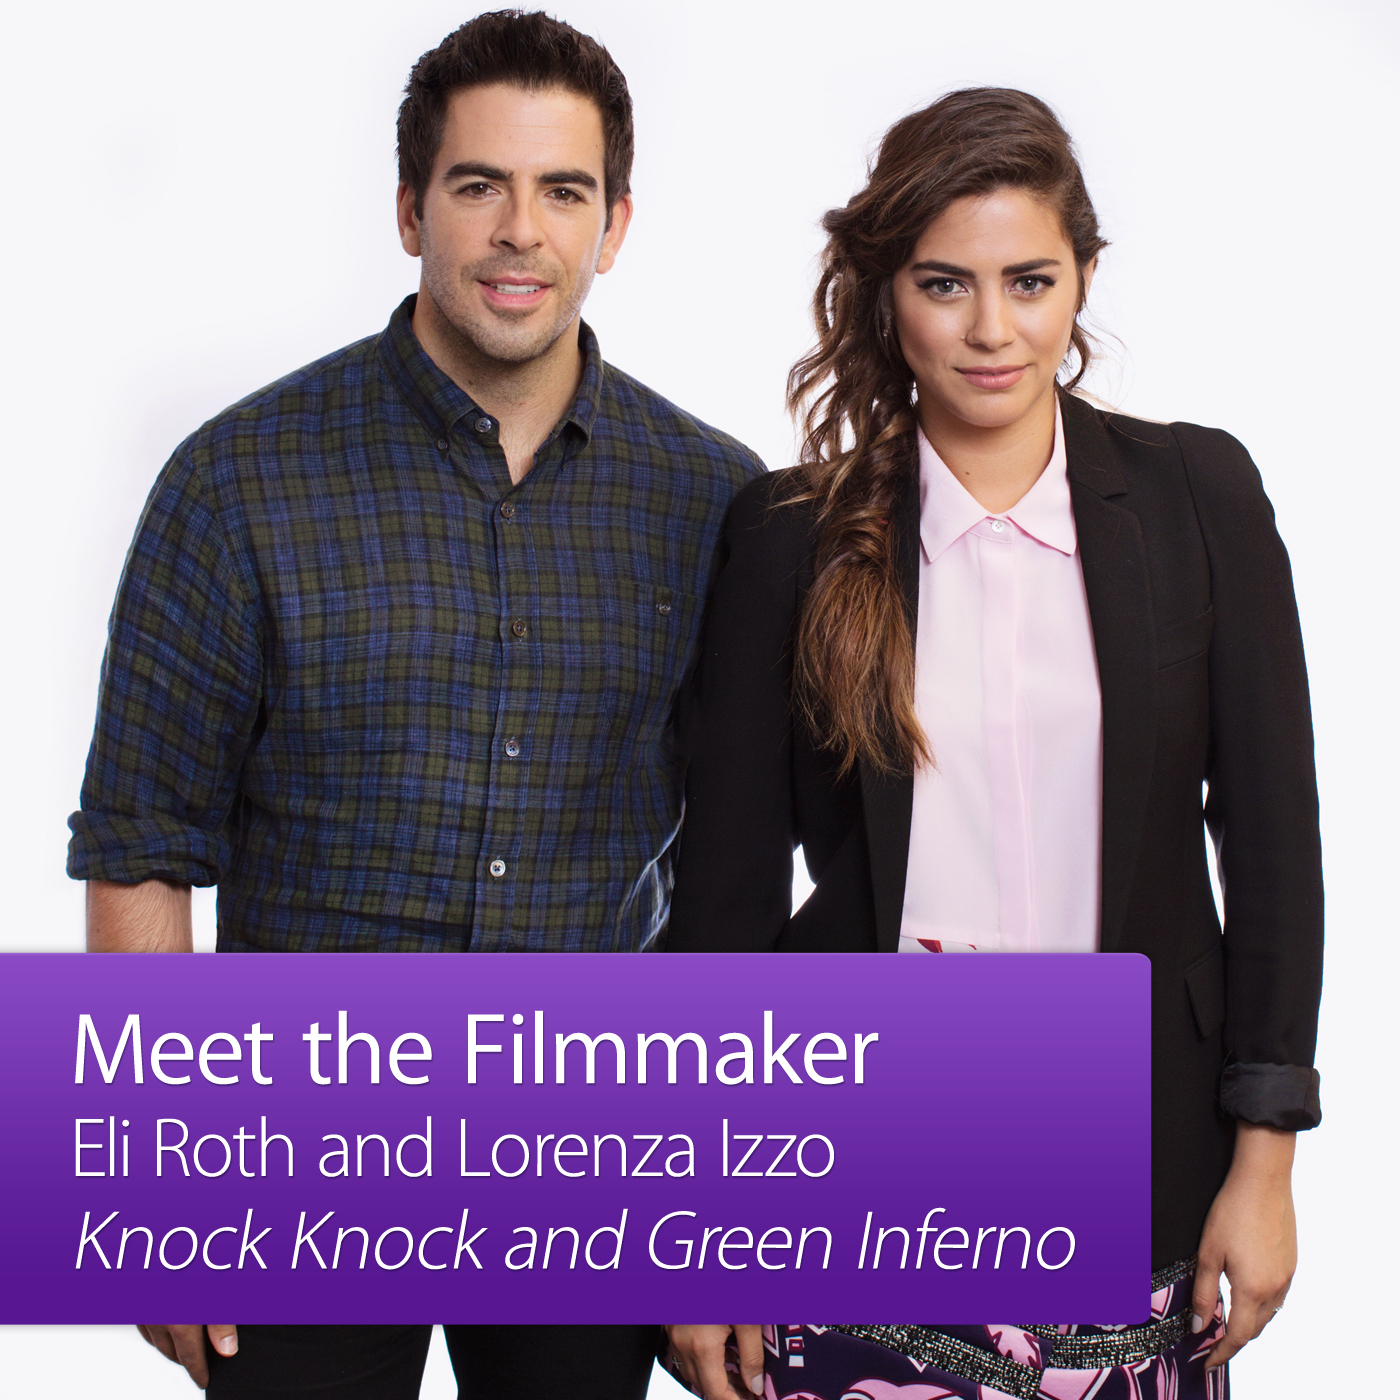 Eli Roth and Lorenza Izzo: Meet the Filmmaker